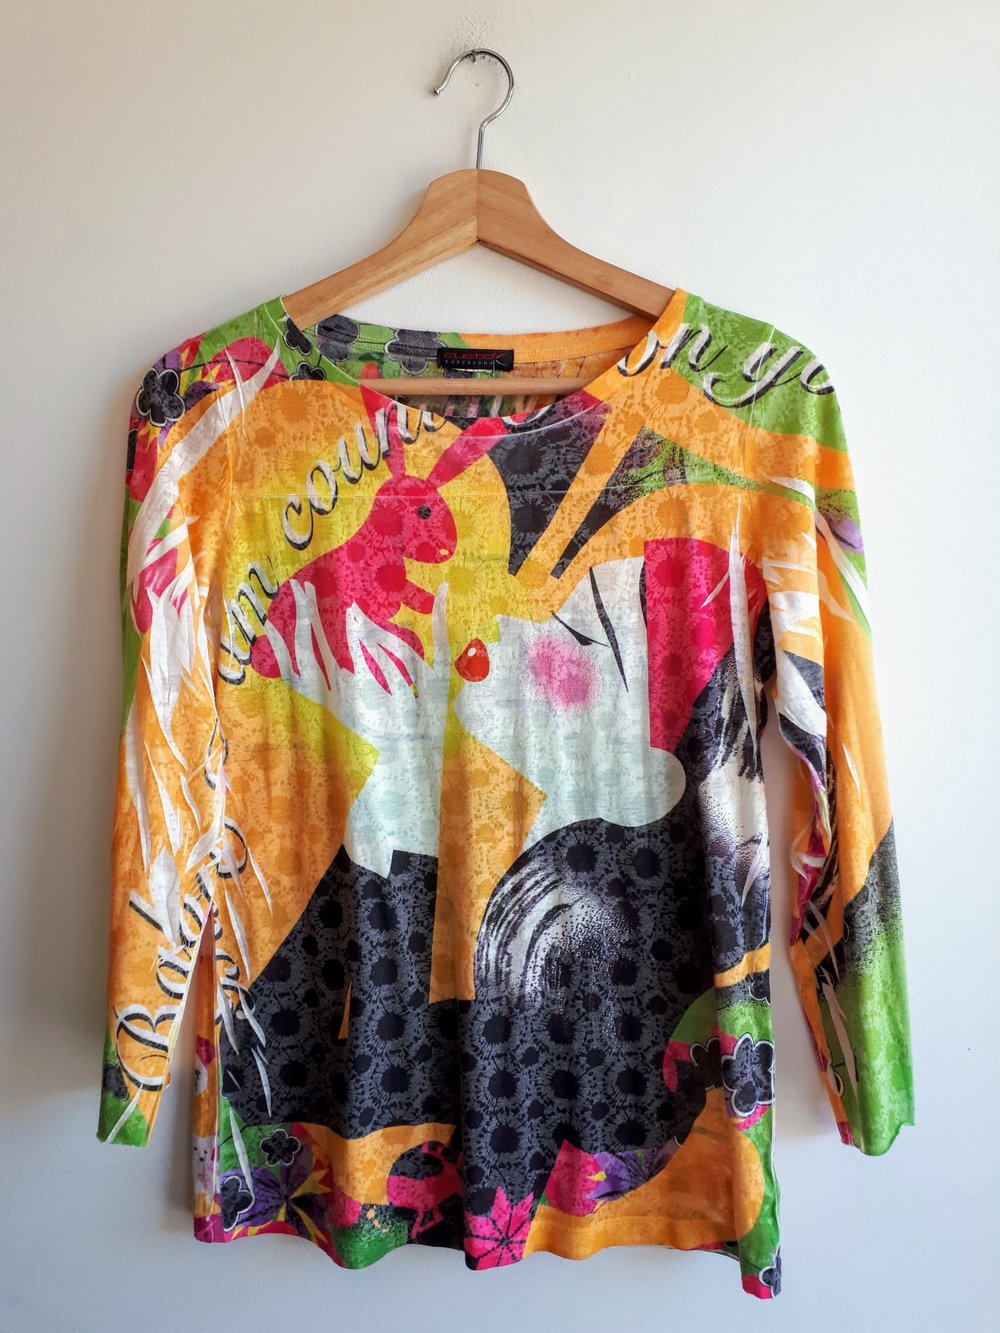 Custo Barcelona top; Size S, $26